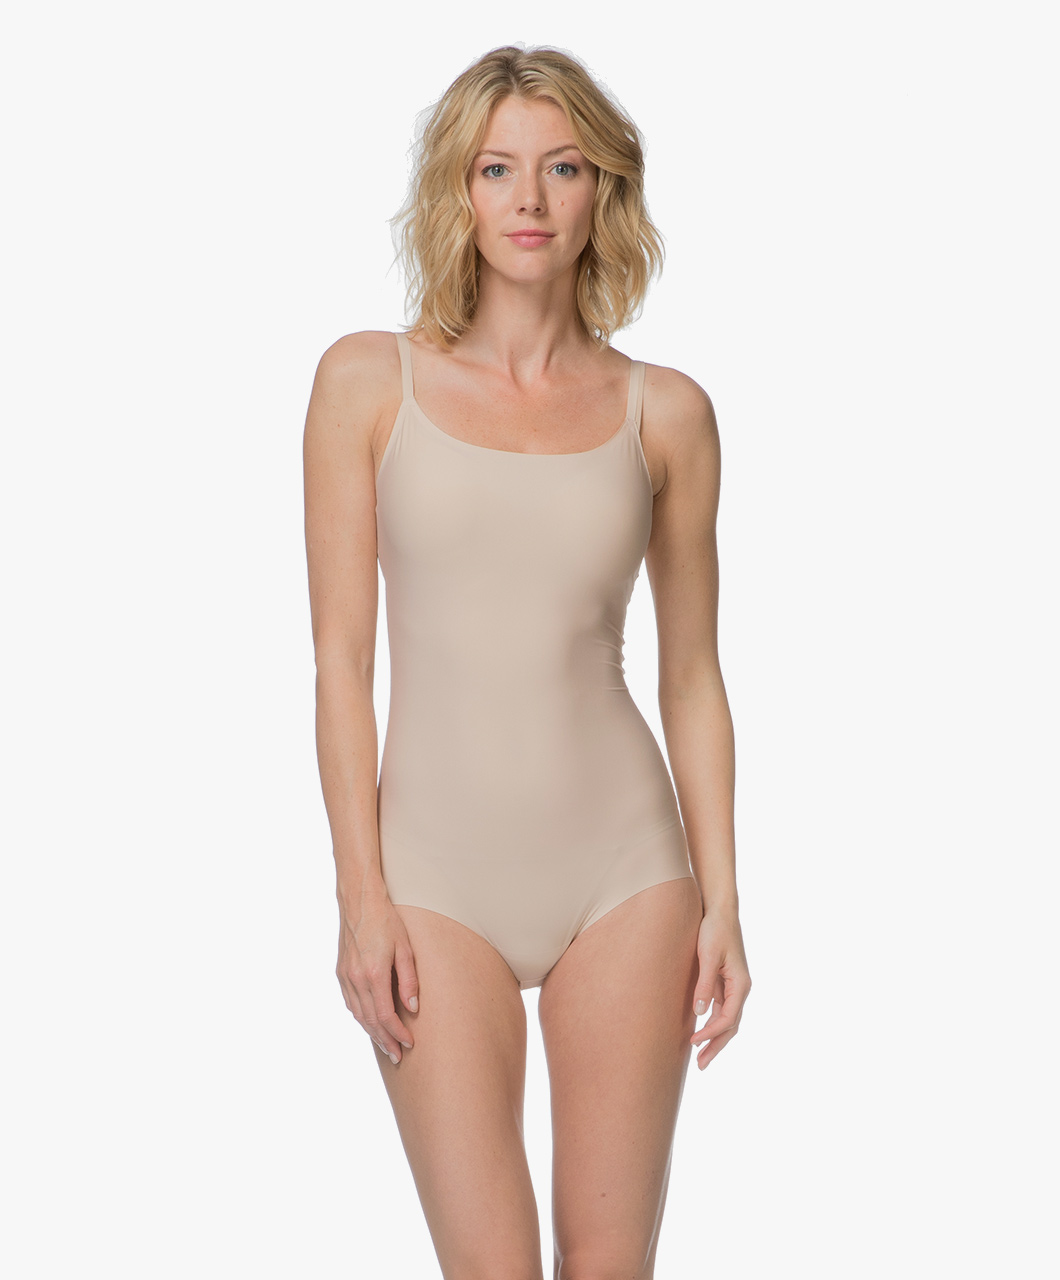 d518f48f320a SPANX® Thinstincts Bodysuit - Soft Nude - 10010r 2119 soft